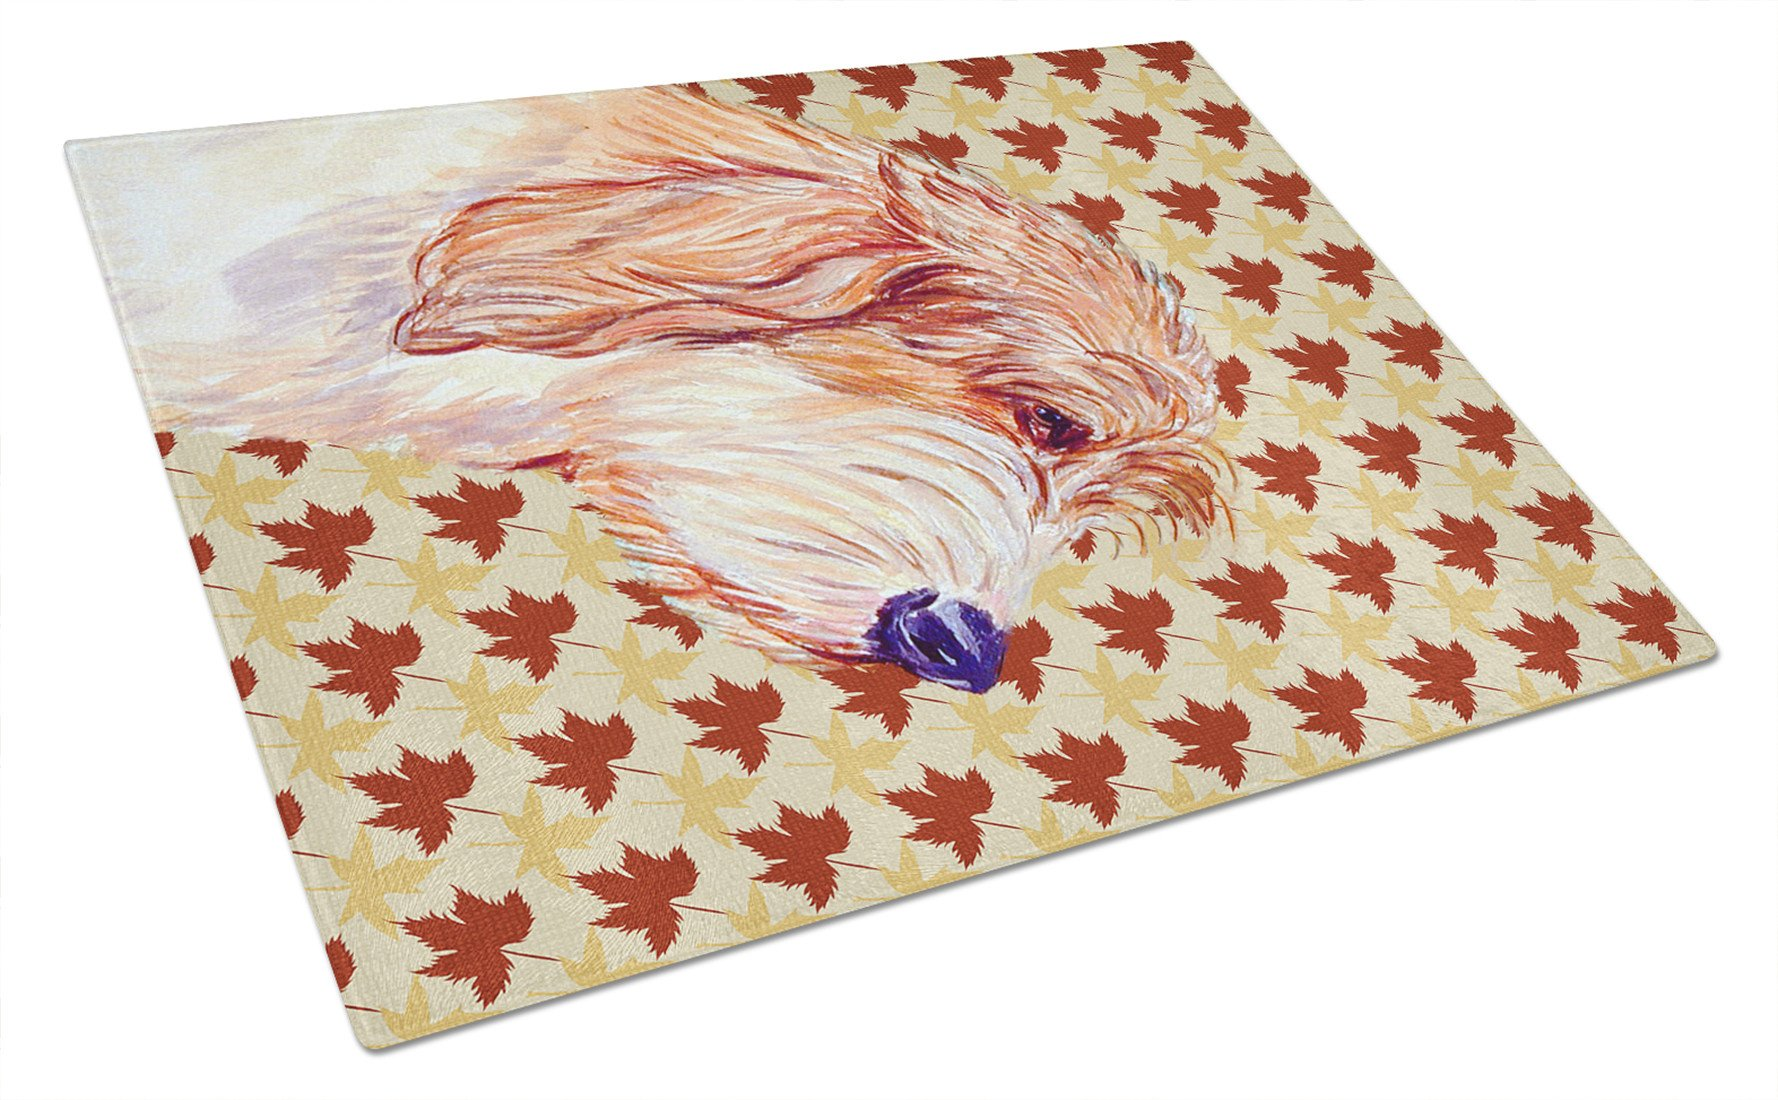 Petit Basset Griffon Vendeen Fall Leaves Portrait Glass Cutting Board Large by Caroline's Treasures